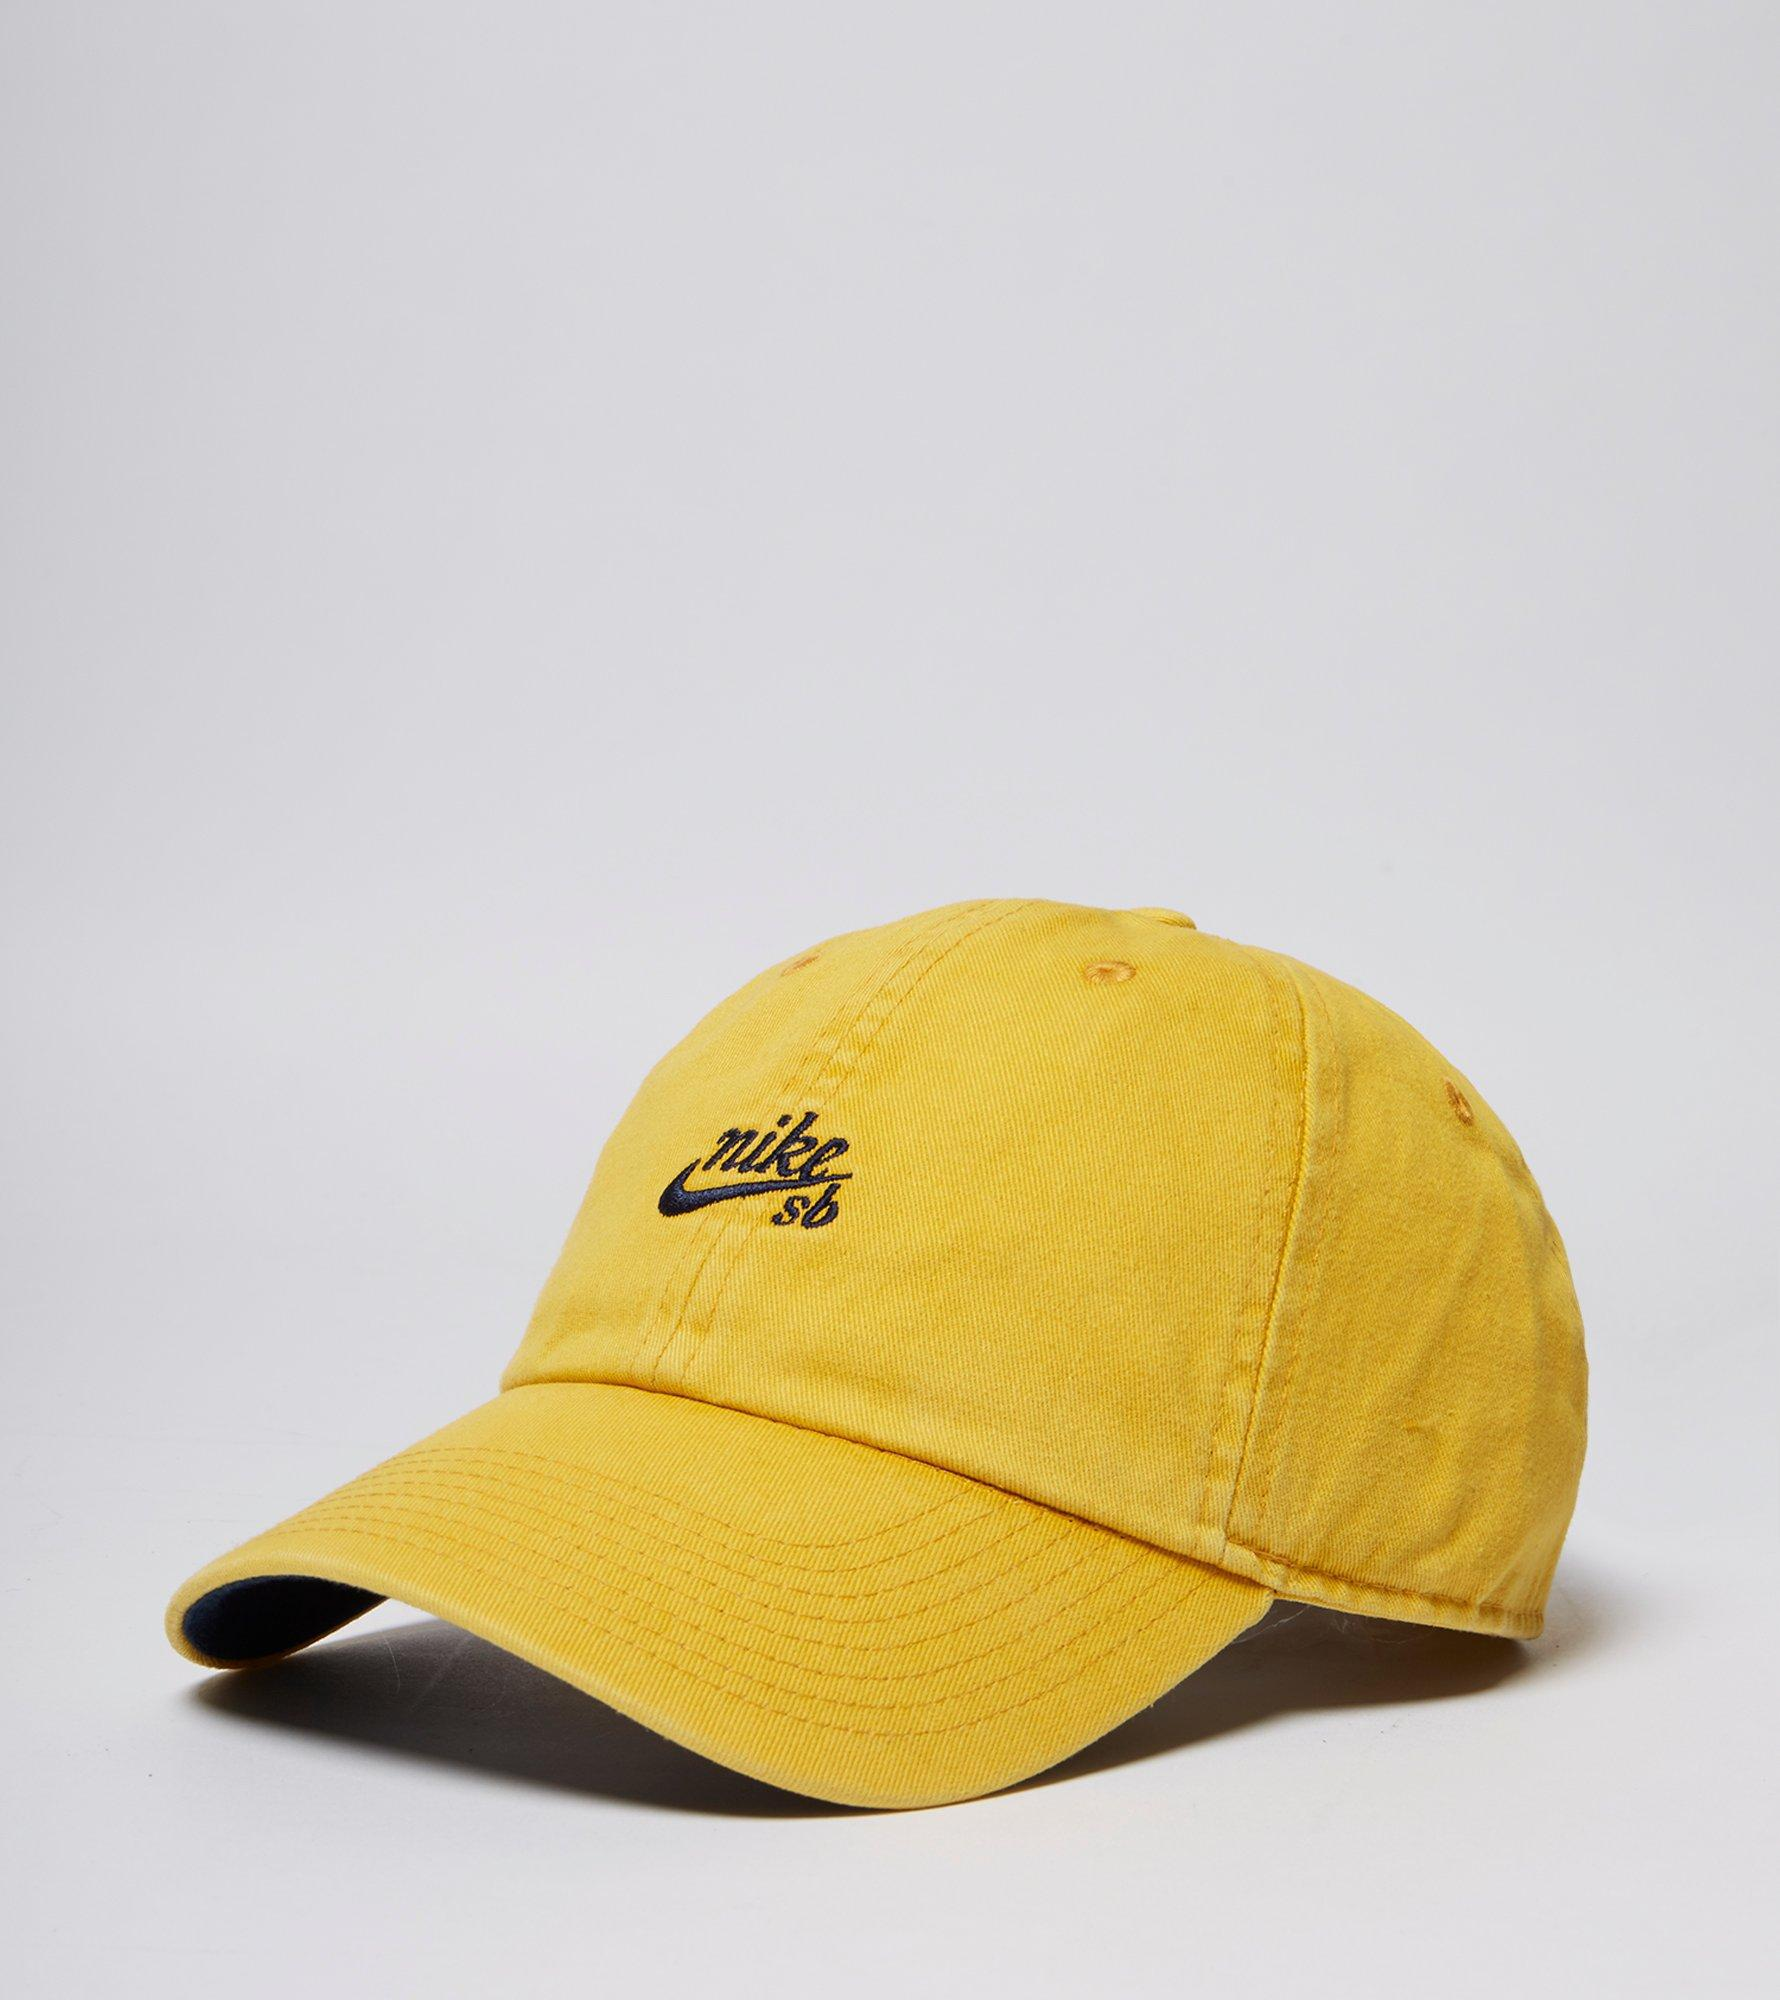 86048e0633cf0 ... best price lyst nike logo cap in yellow for men a5d81 7dfac